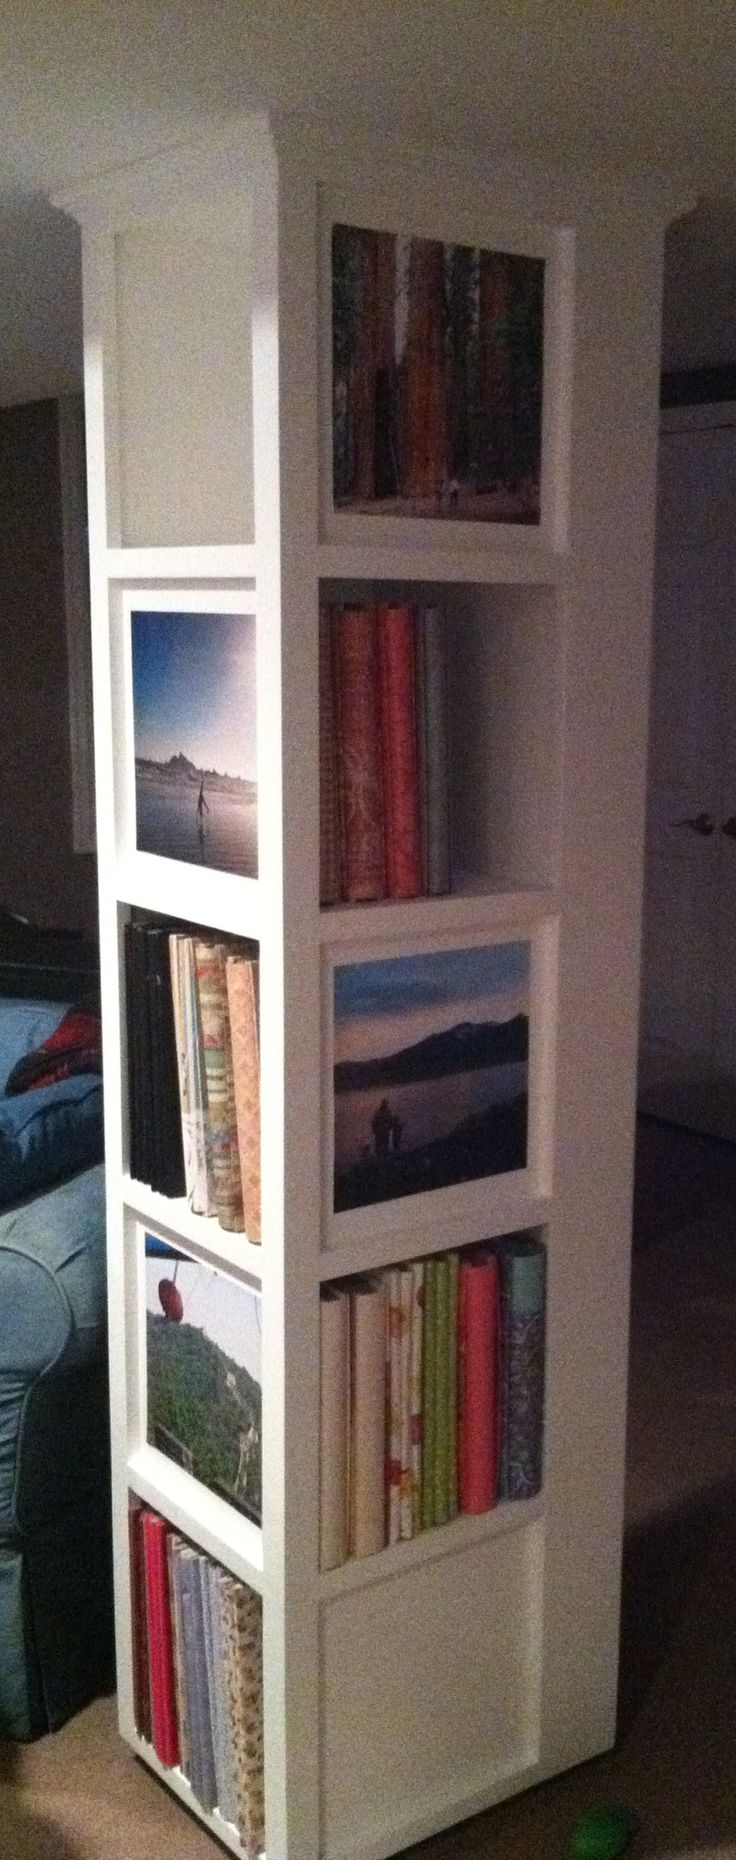 Support Beam in basement built into a picuture album case / picture display !!                                                                                                                                                                                 More